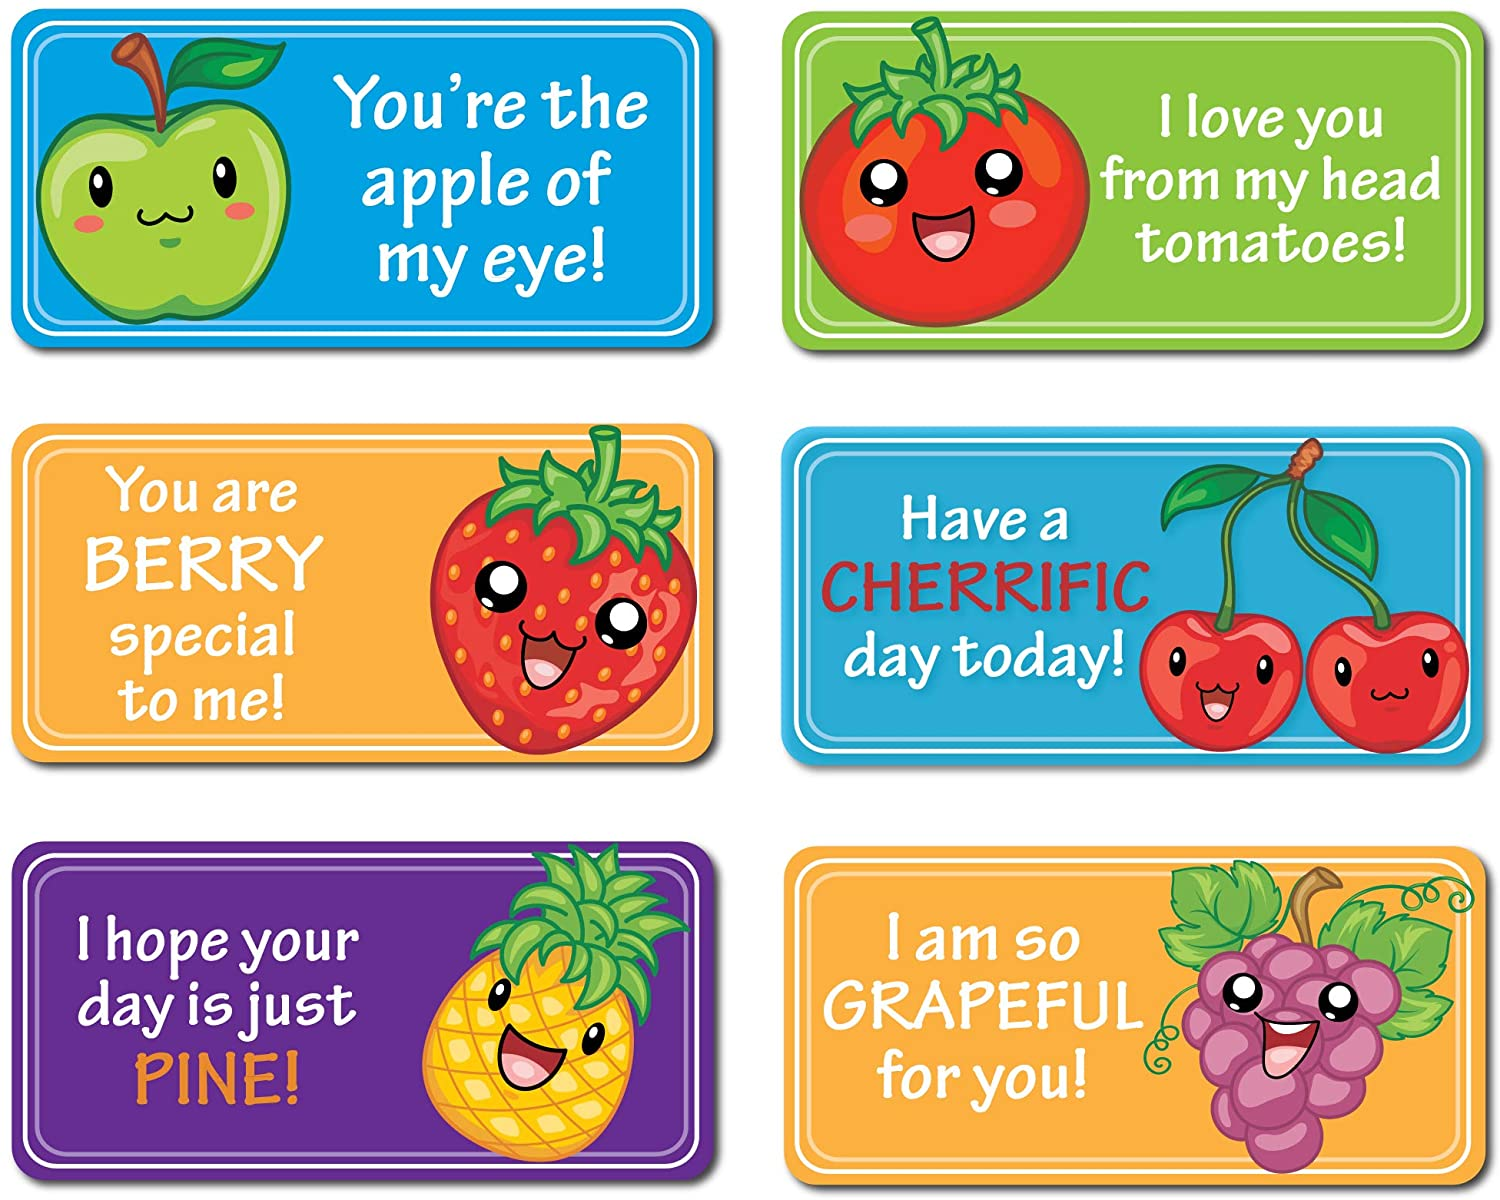 Lovable Labels Motivational, Inspirational, Affirmation, Lunch Box Message Stickers. These Lunchbox Notes for Kids are Positive Kindness Stickers Providing Support and Love. (Tutti Frutti)